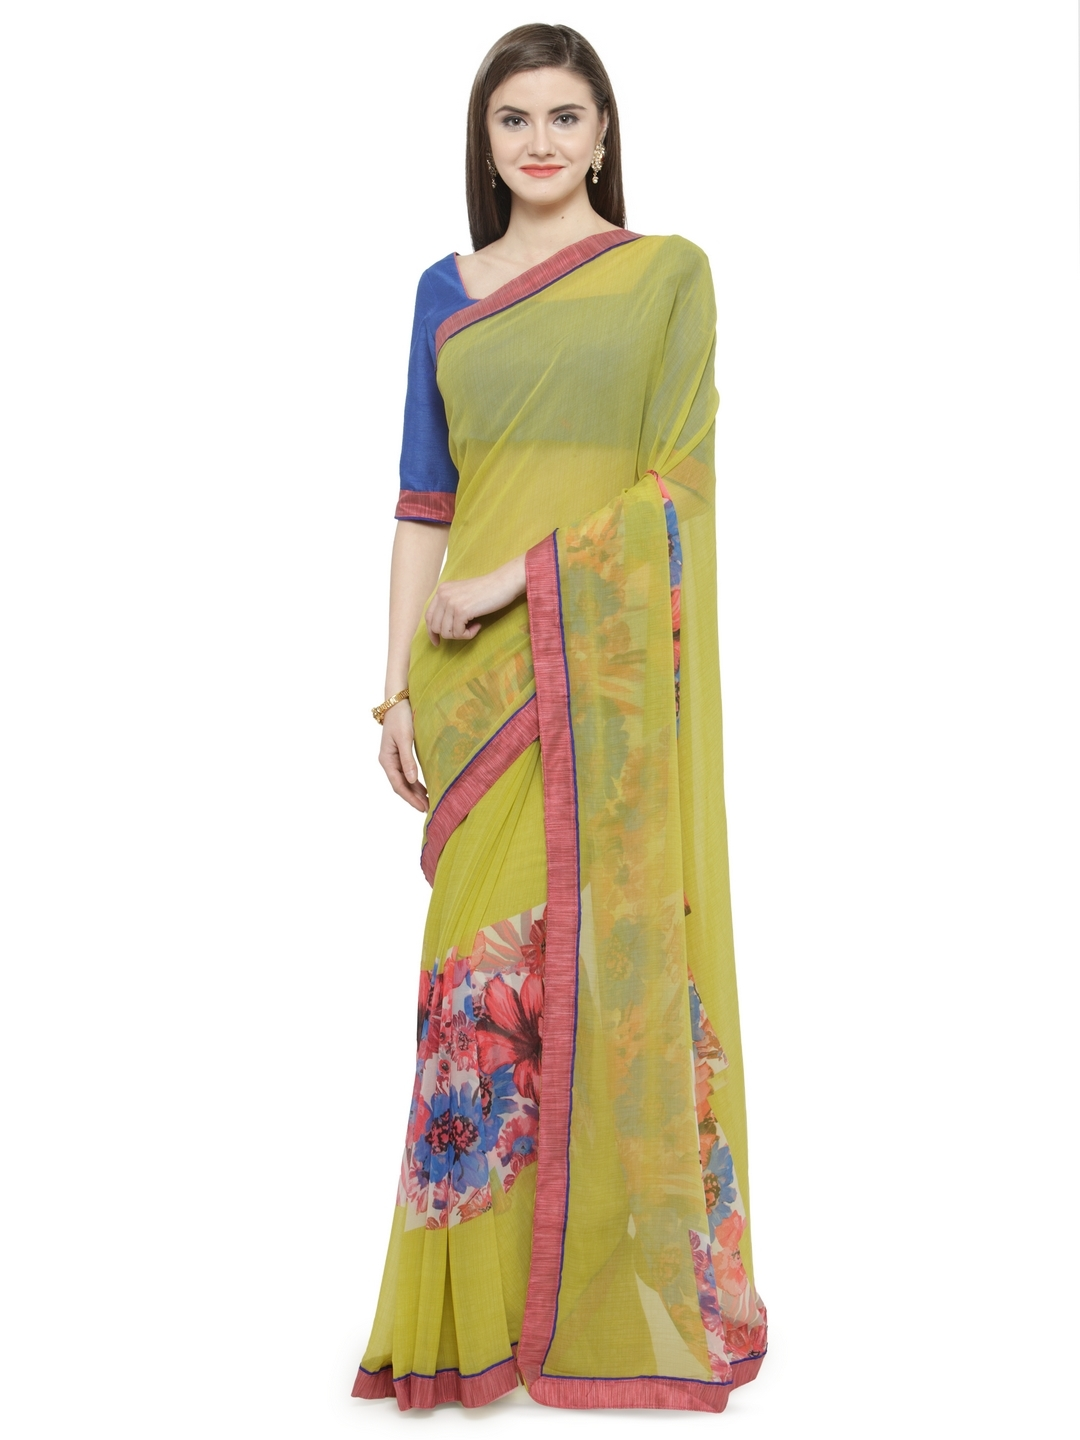 9e31bd411a5 Buy Shaily Yellow   Pink Pure Georgette Printed Saree - Sarees for ...